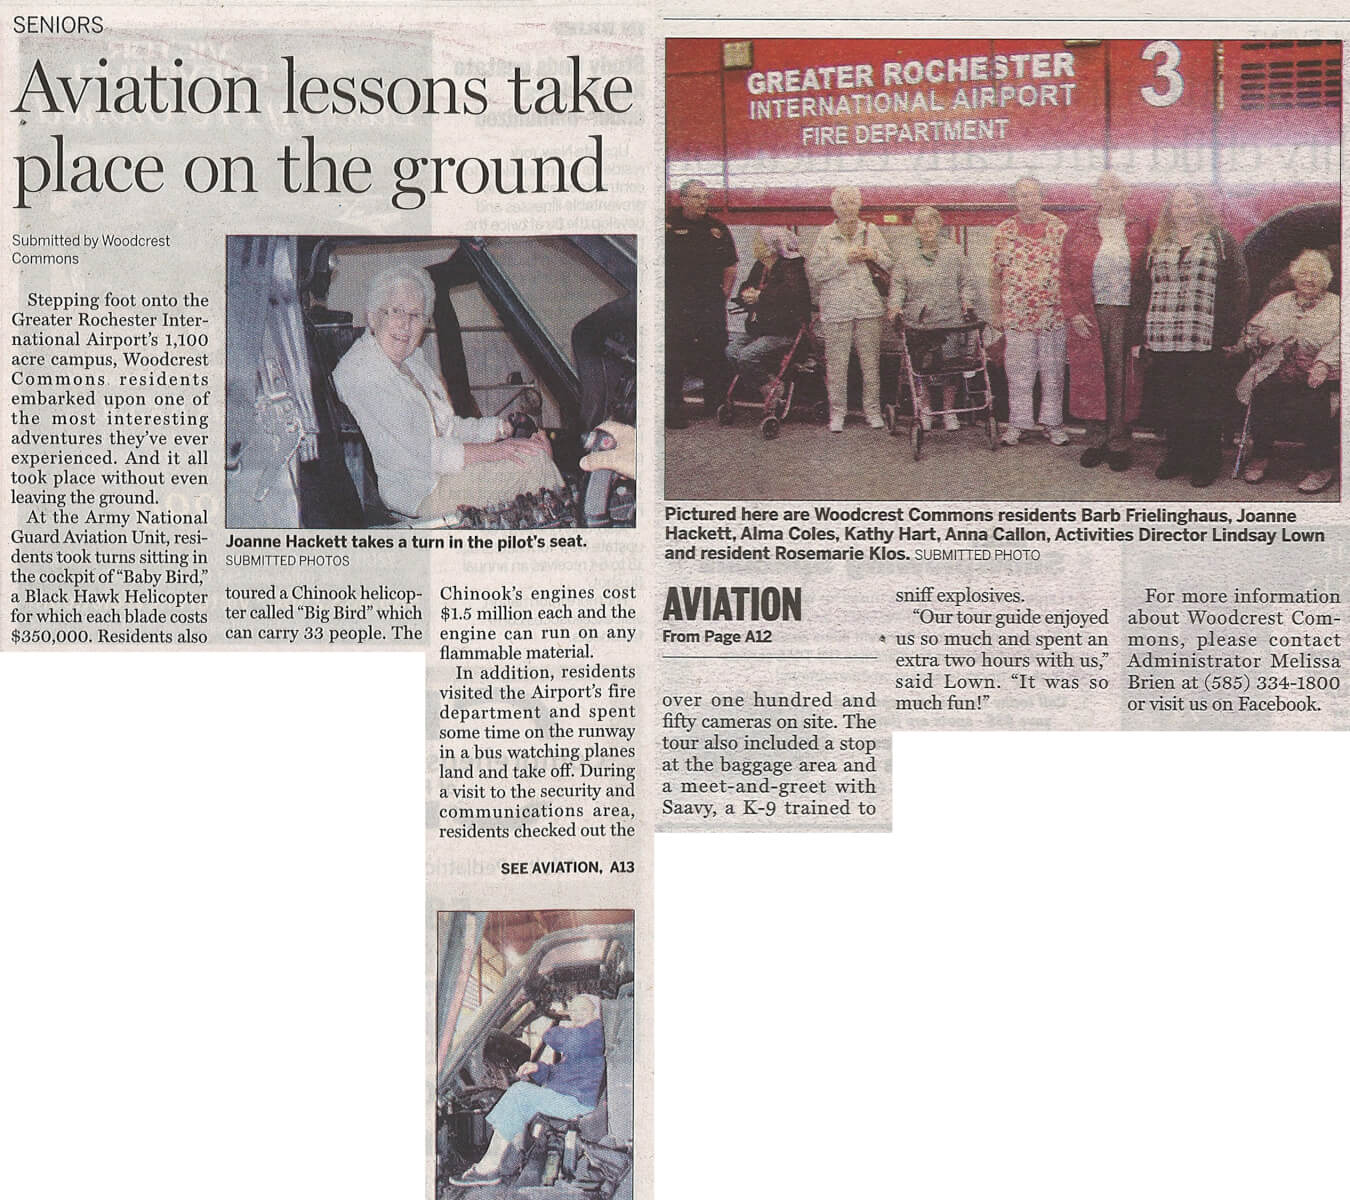 Woodcrest Commons, Airport Visit, Article in the Henrietta Post October 9, 2014